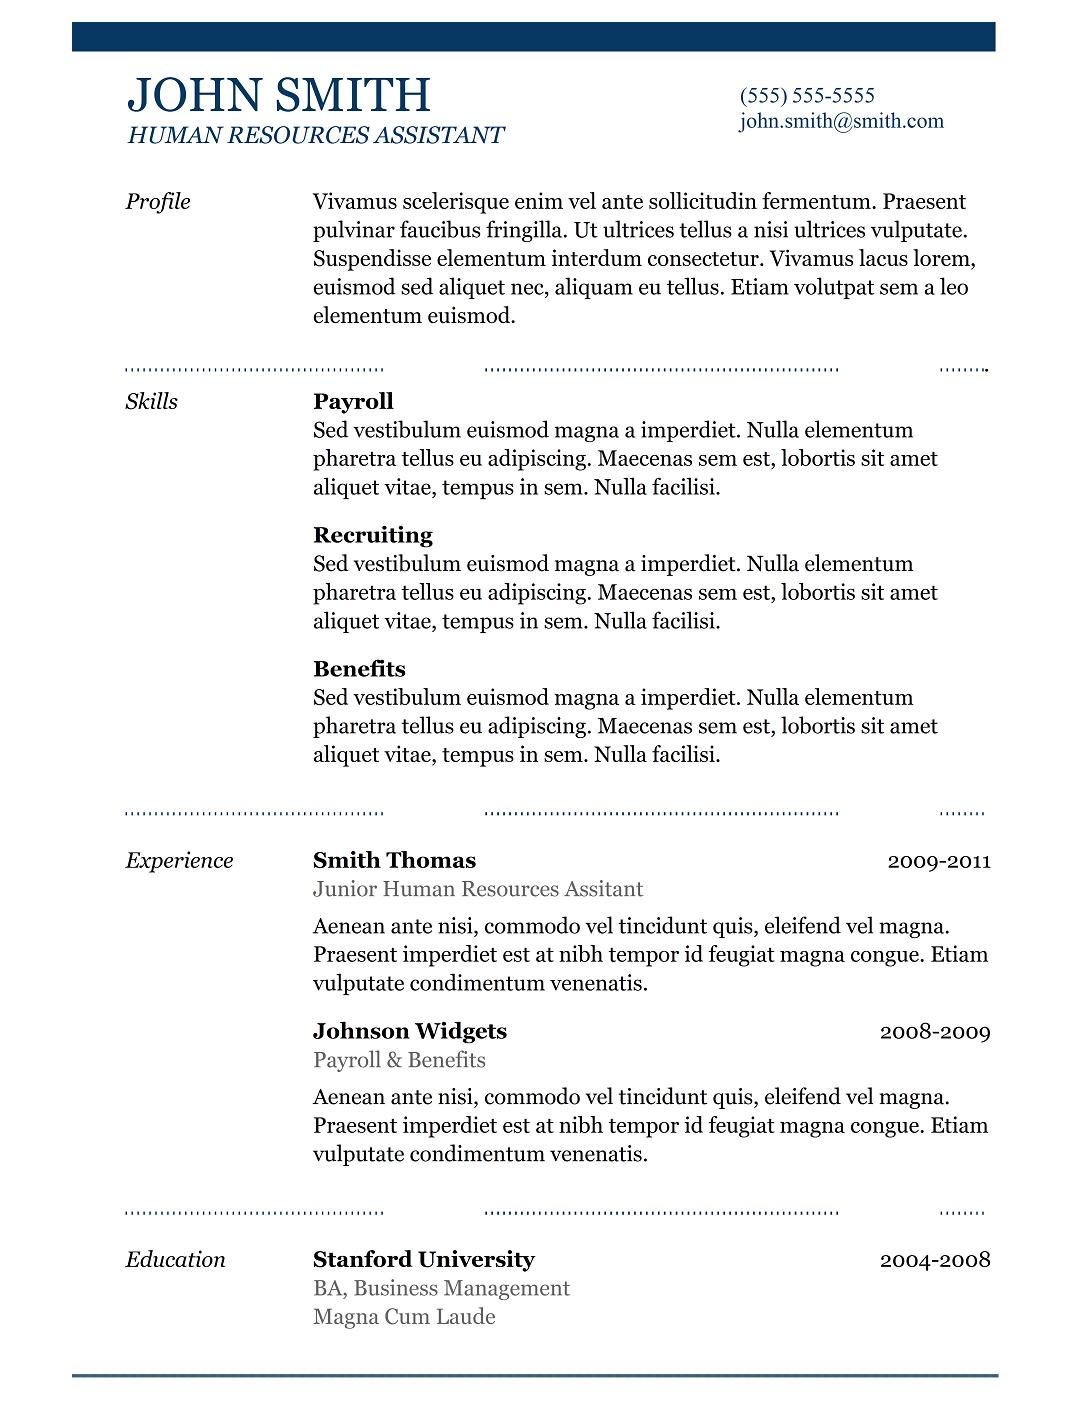 combined resume sample also best professional resume layout examples and top resume keywordscombination